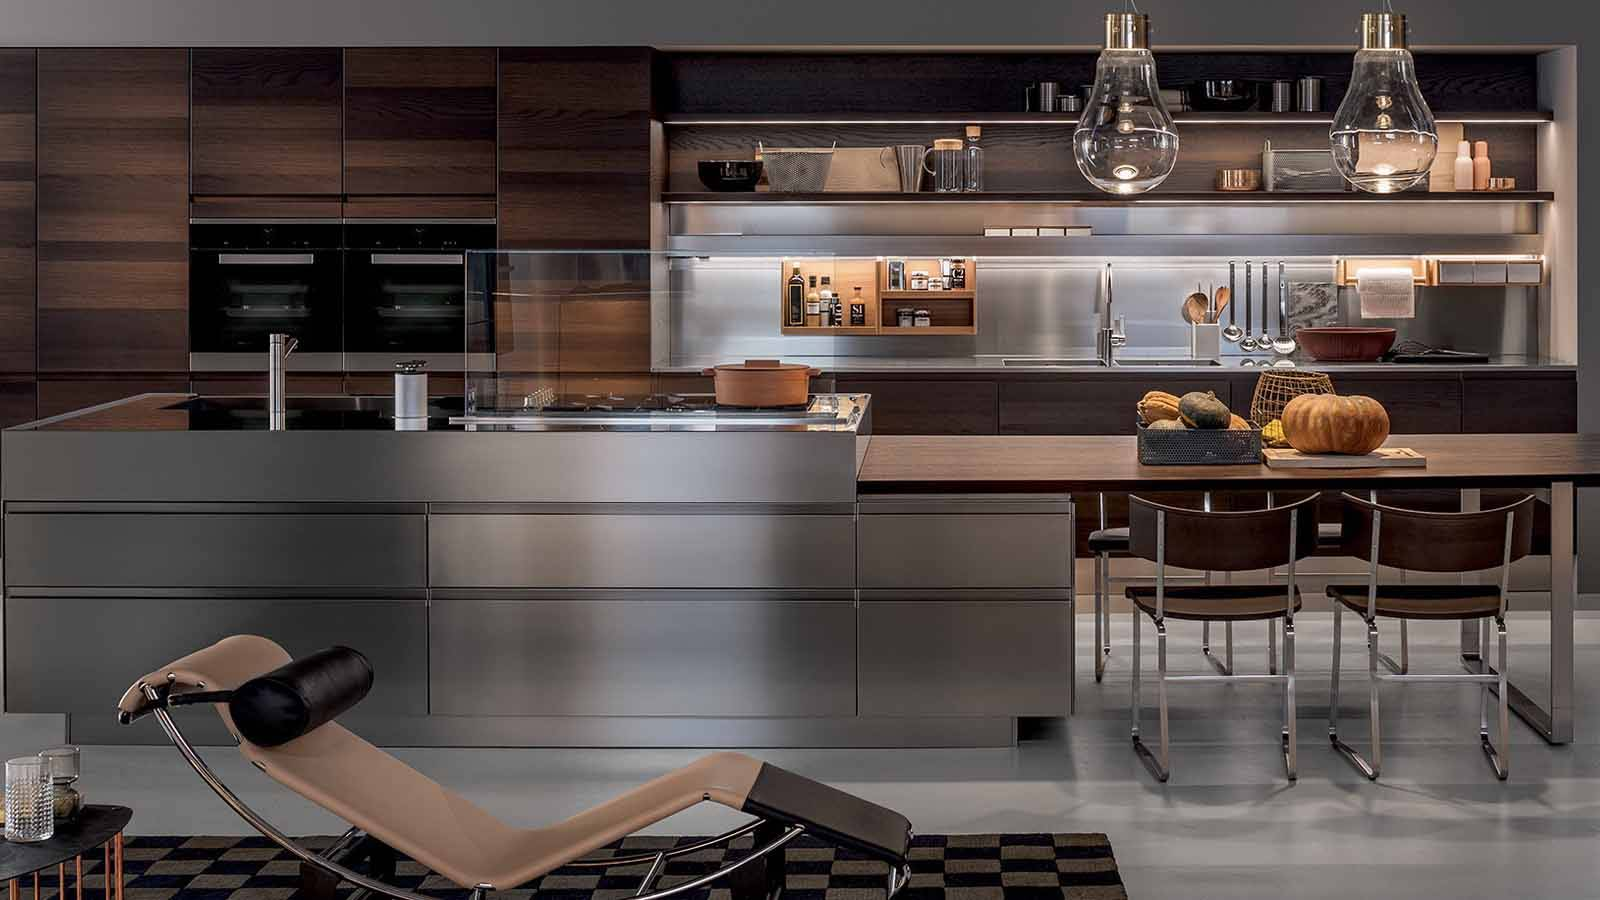 Arclinea milano kitchen convivium interior luxury design antonio citterio legno metallo